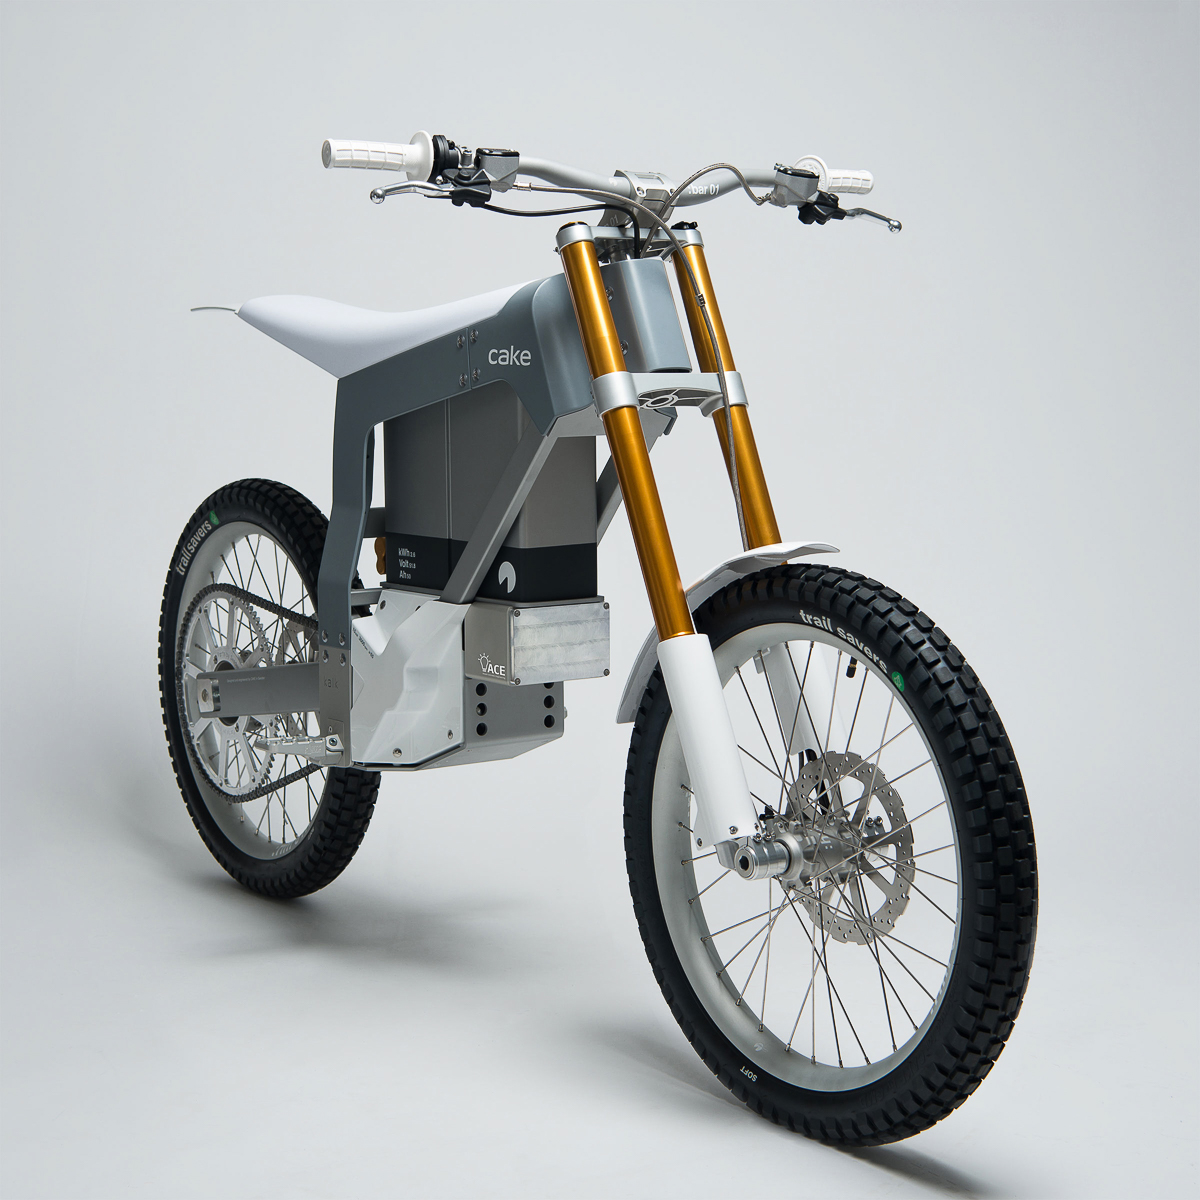 Check Out Cake Kalk, The RM67,000 Electric Off-road Bike